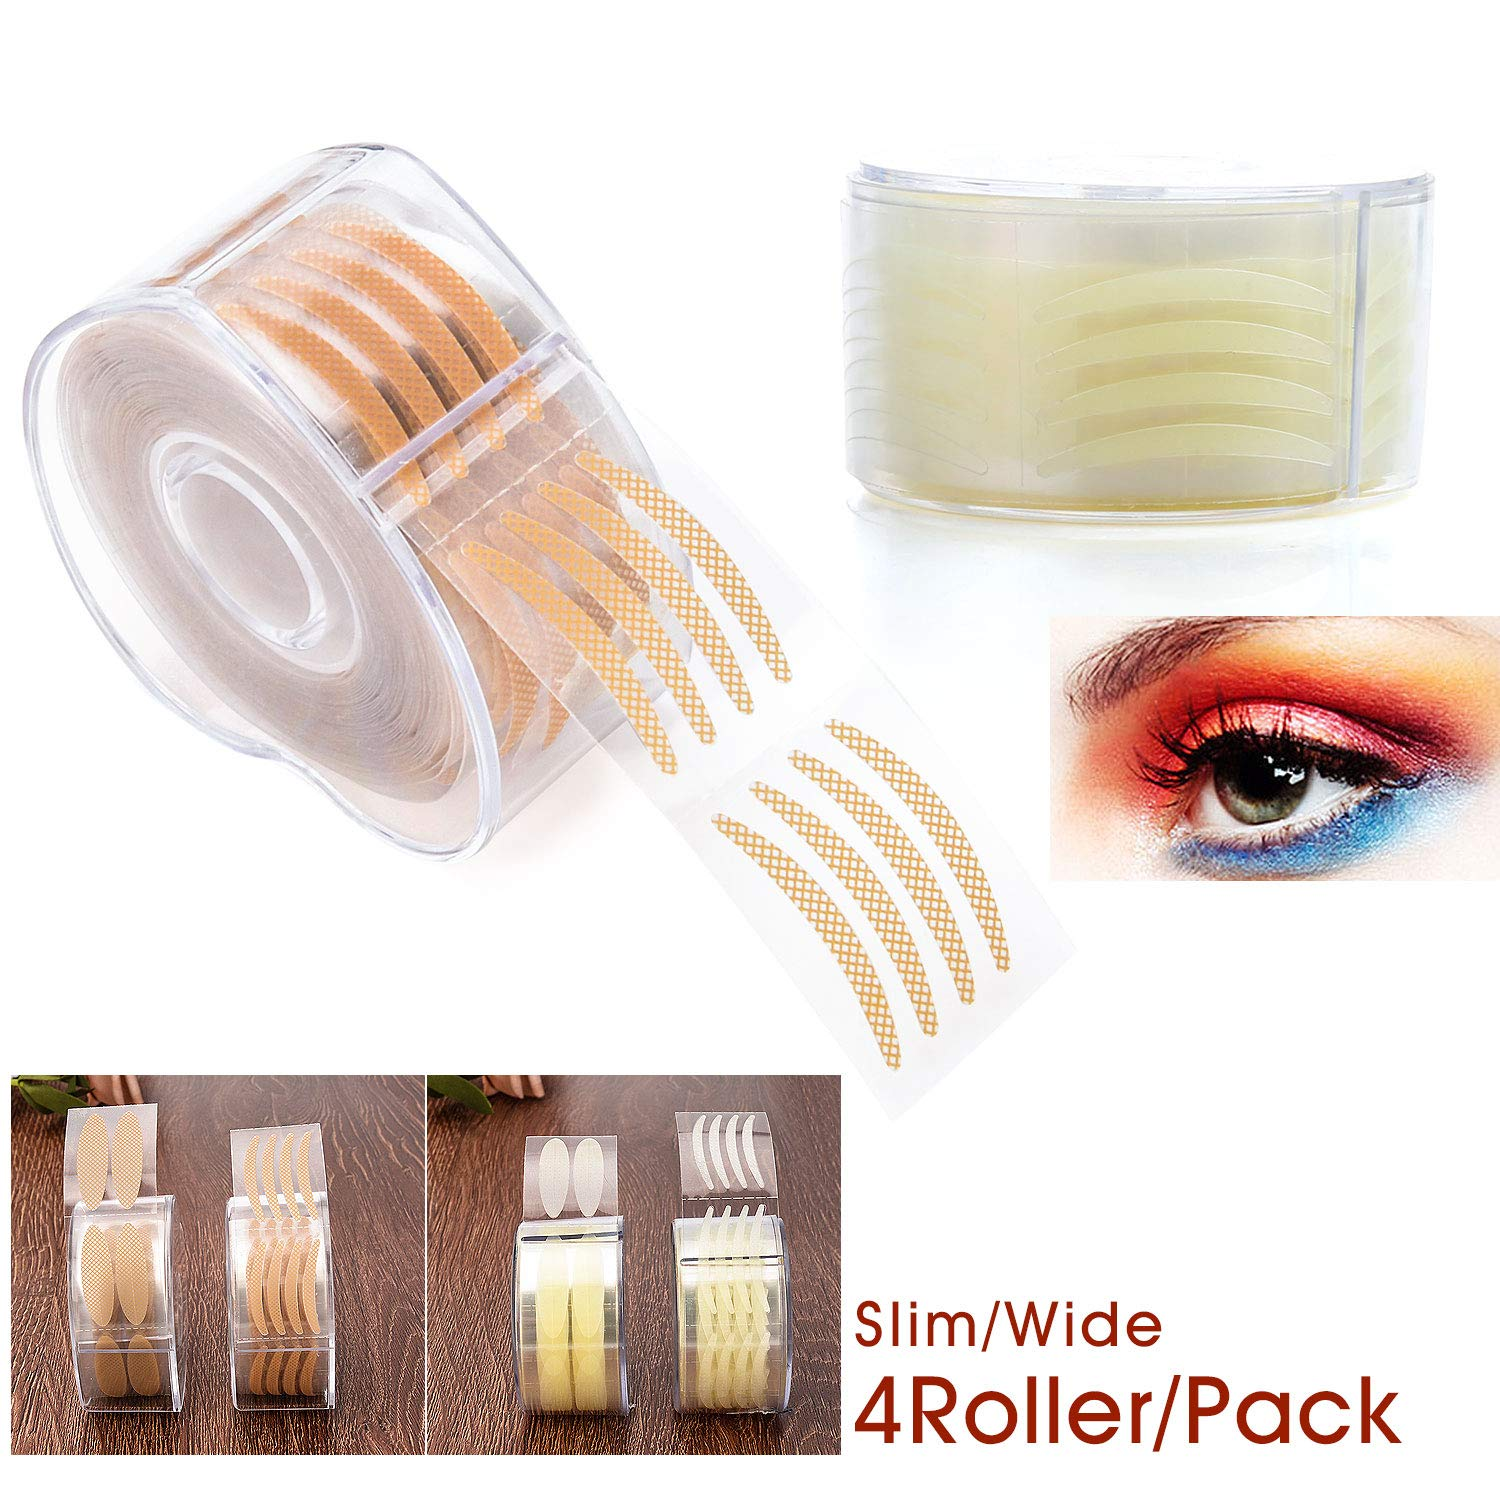 1200 Pairs Natural Invisible Double Eyelid Tape Stickers,One Side Sticky, Instant Eyelid Lift Without Surgery, Medical Grade Latex Free Hypoallergenic, Perfect for Hooded, Droopy, Uneven, Mono-eyelids, 4 Roller (1200 Pairs) Pormasbenzer